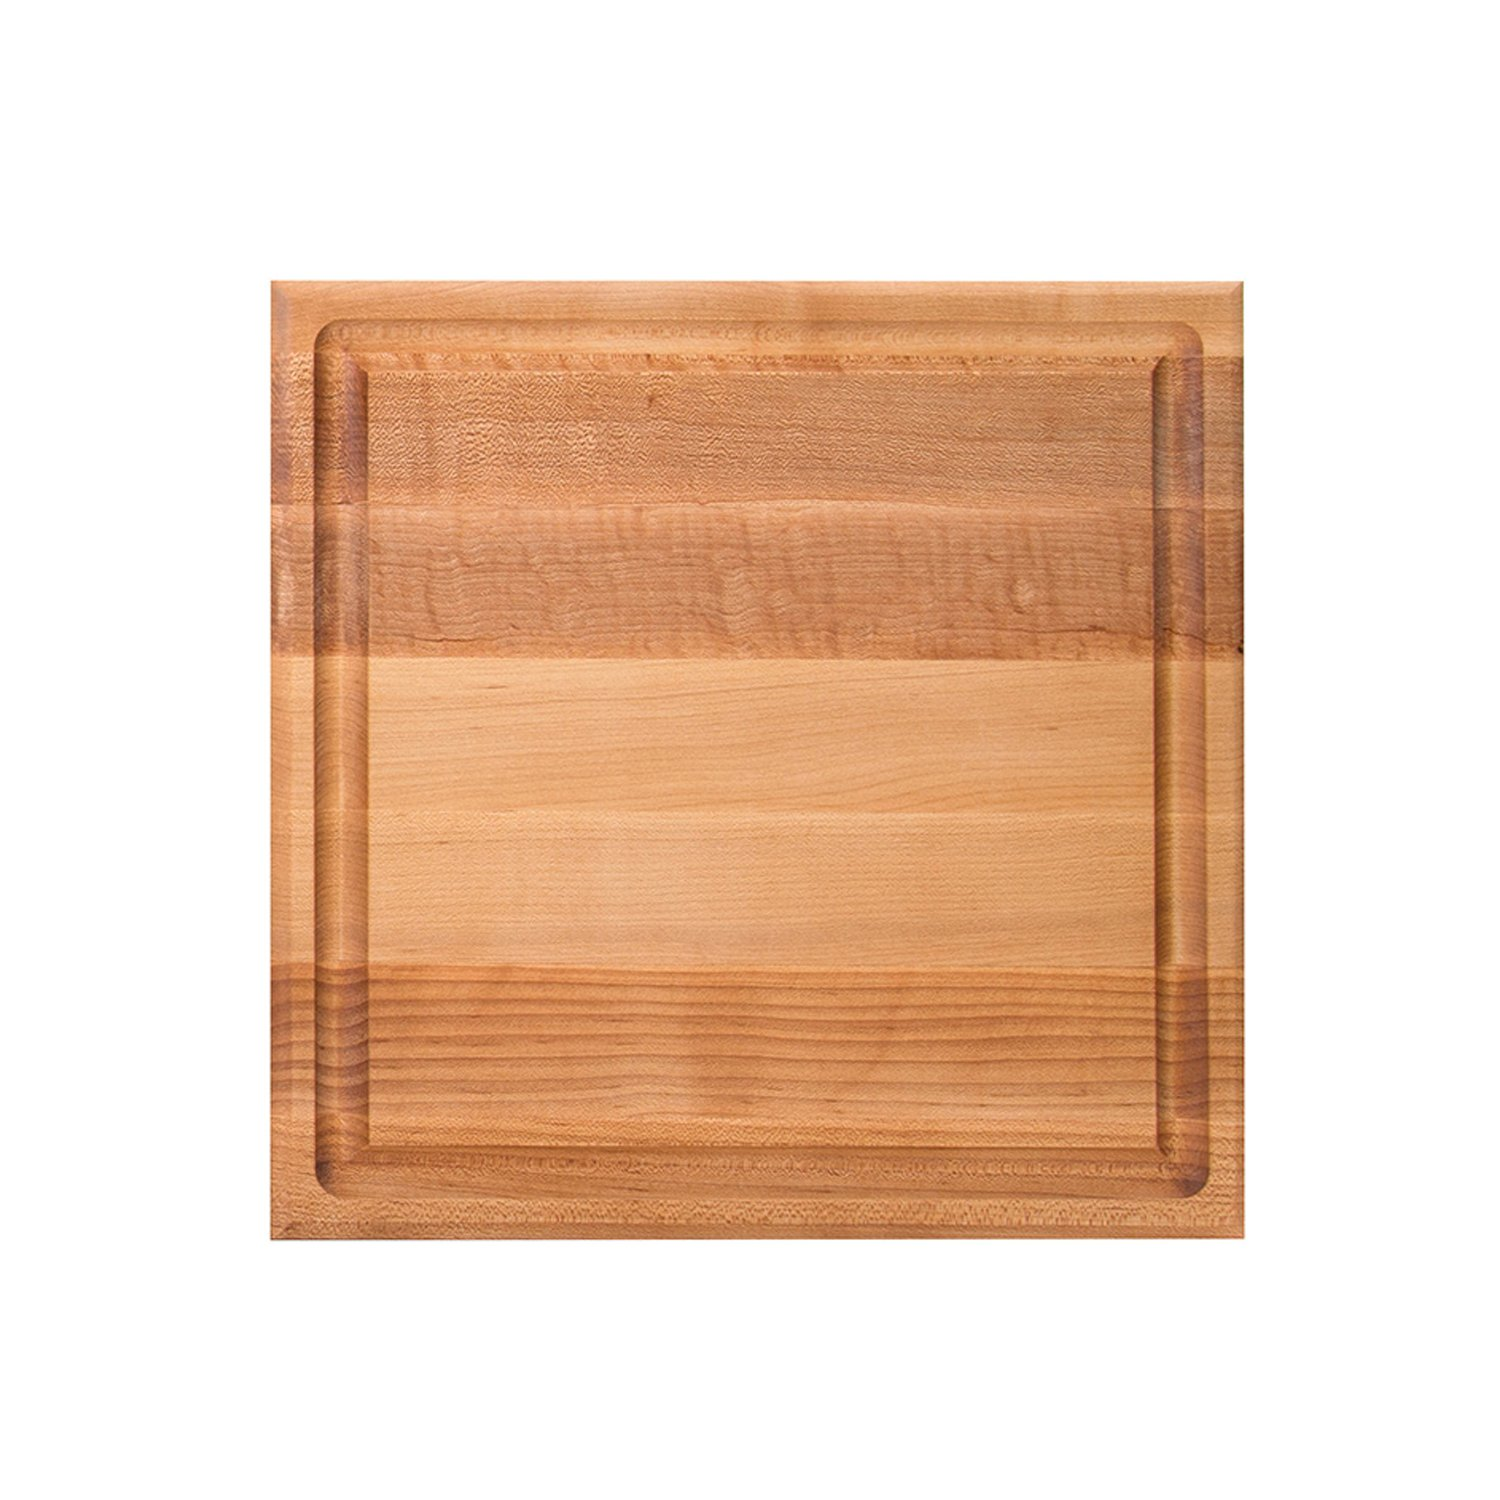 John Boos Block CB1052-1M1212175 Maple Wood Square Cutting Board with Juice Groove, 12 Inches x 12 Inches x 1.5 Inches by John Boos (Image #2)